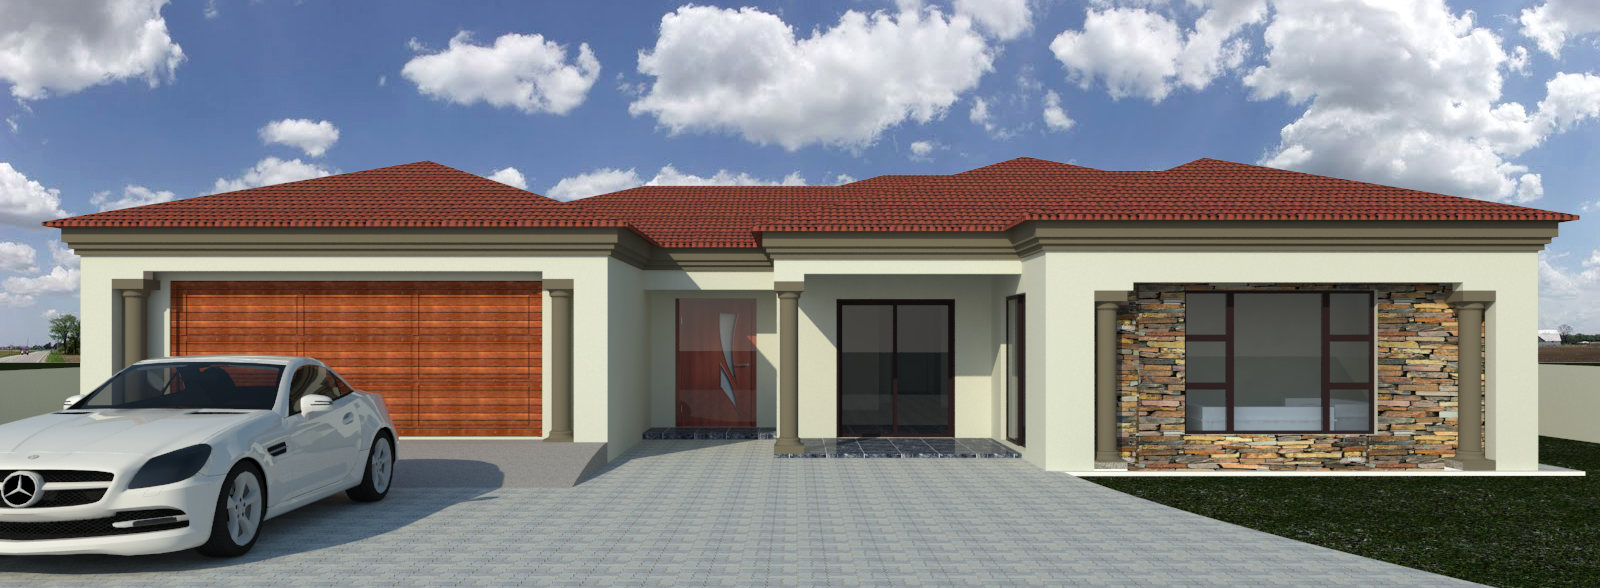 My house plans south africa my house plans most for Most affordable way to build a house